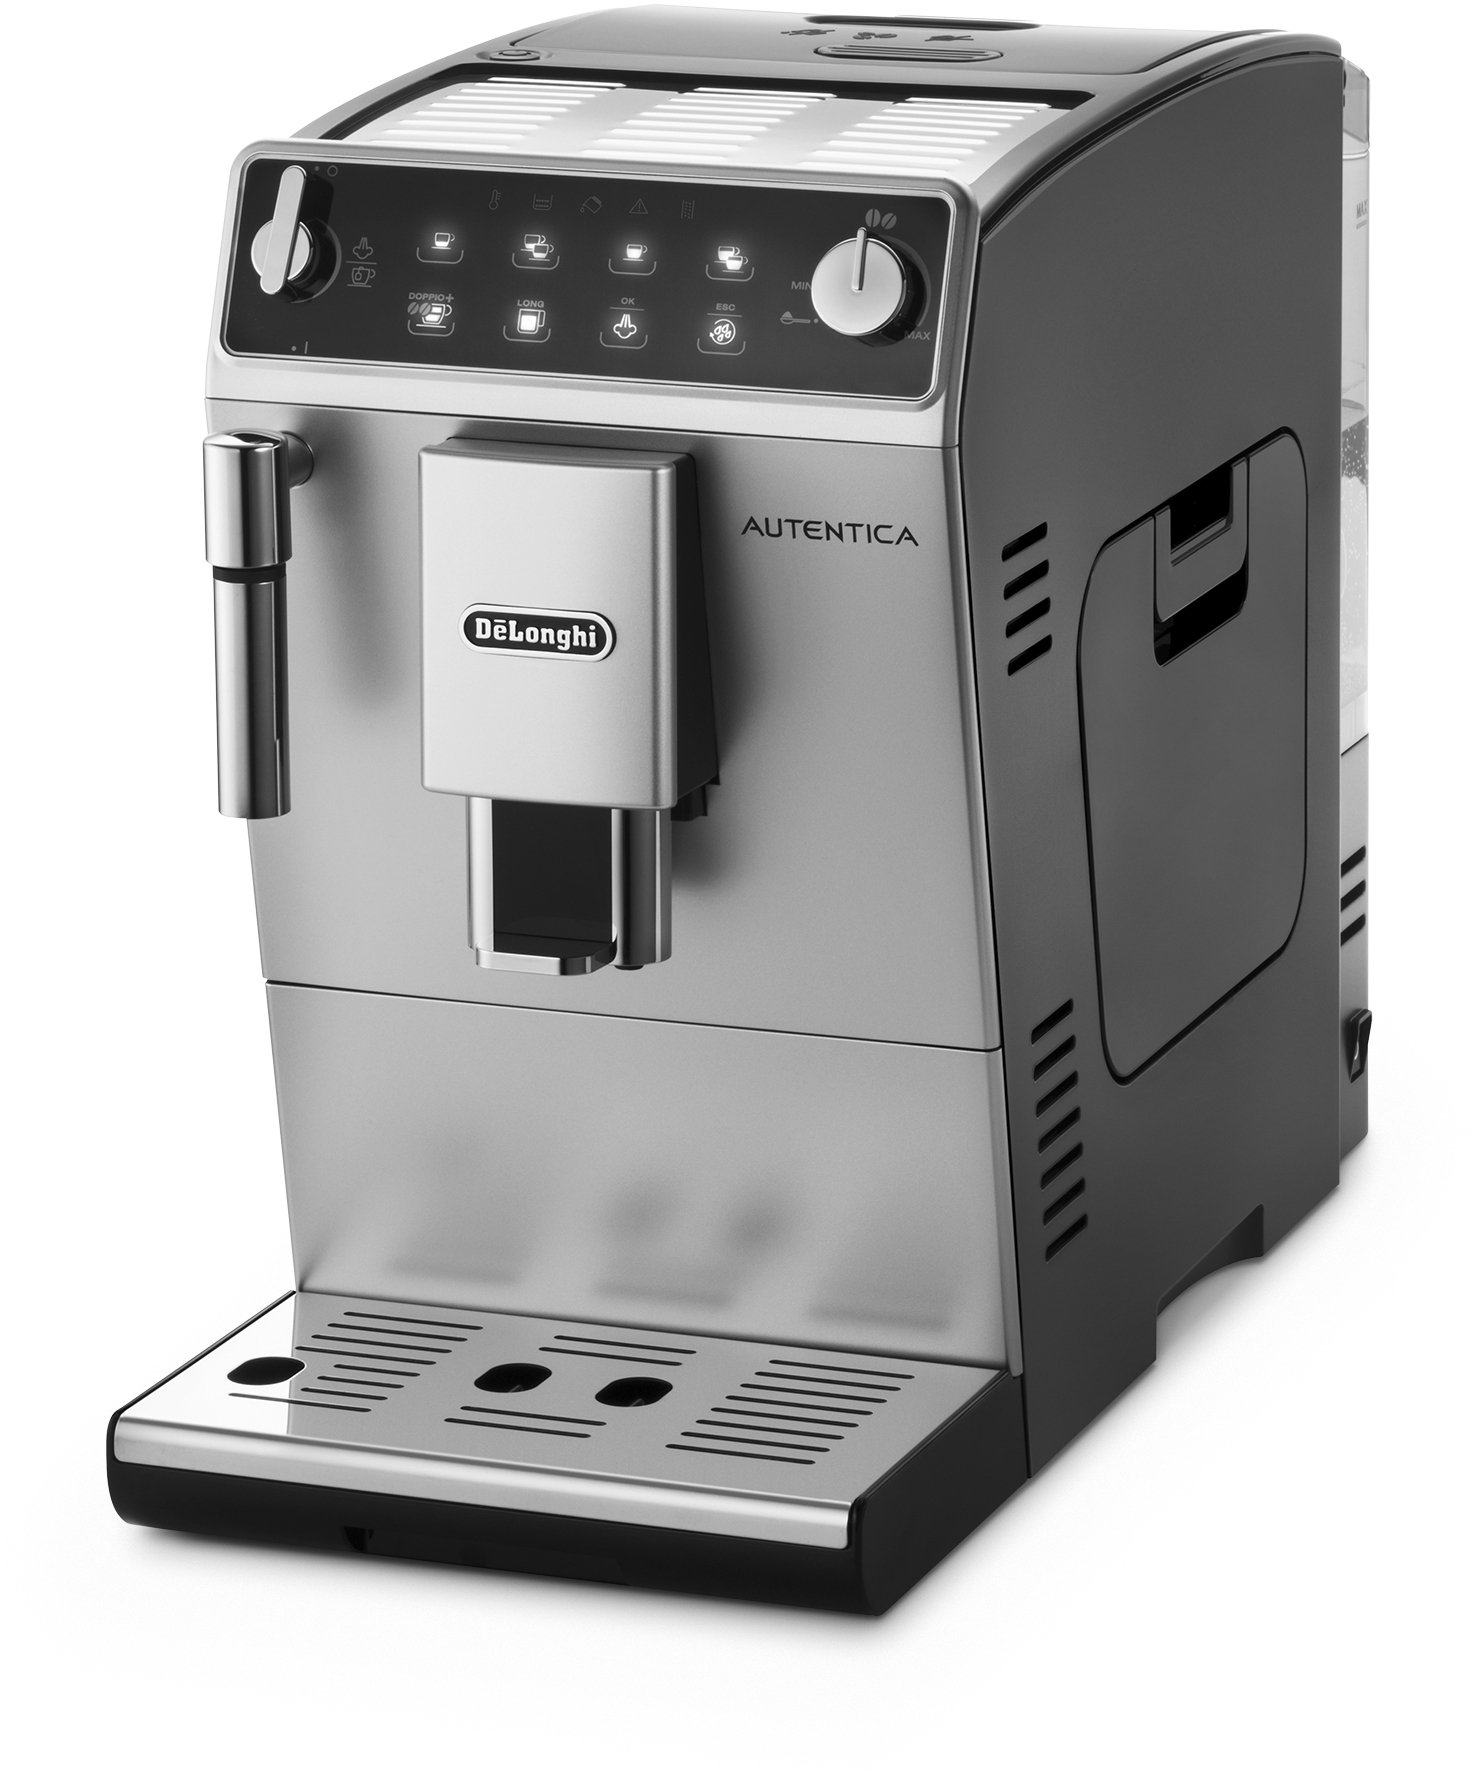 71ECMSm6HEL - De'Longhi Autentica Cappuccino, Fully Automatic Bean to Cup Coffee Machine, Espresso Maker, ETAM29.660.SB, Silver and…